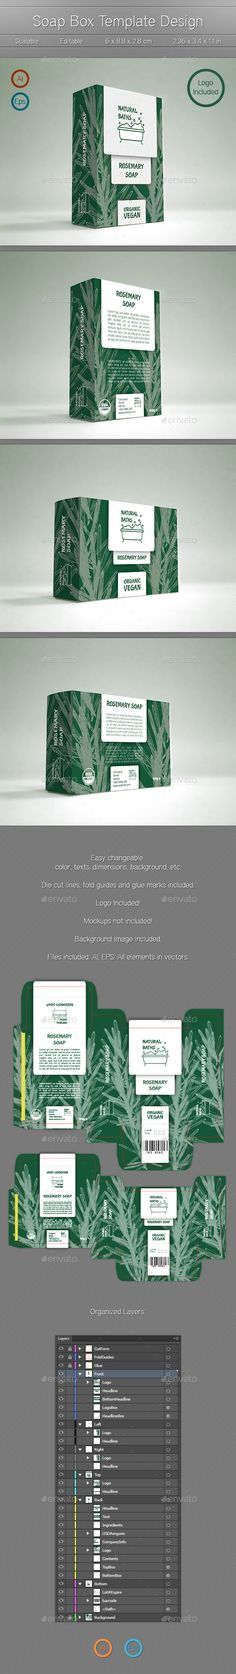 Classic tea packaging design packaging design print for Soap box design template